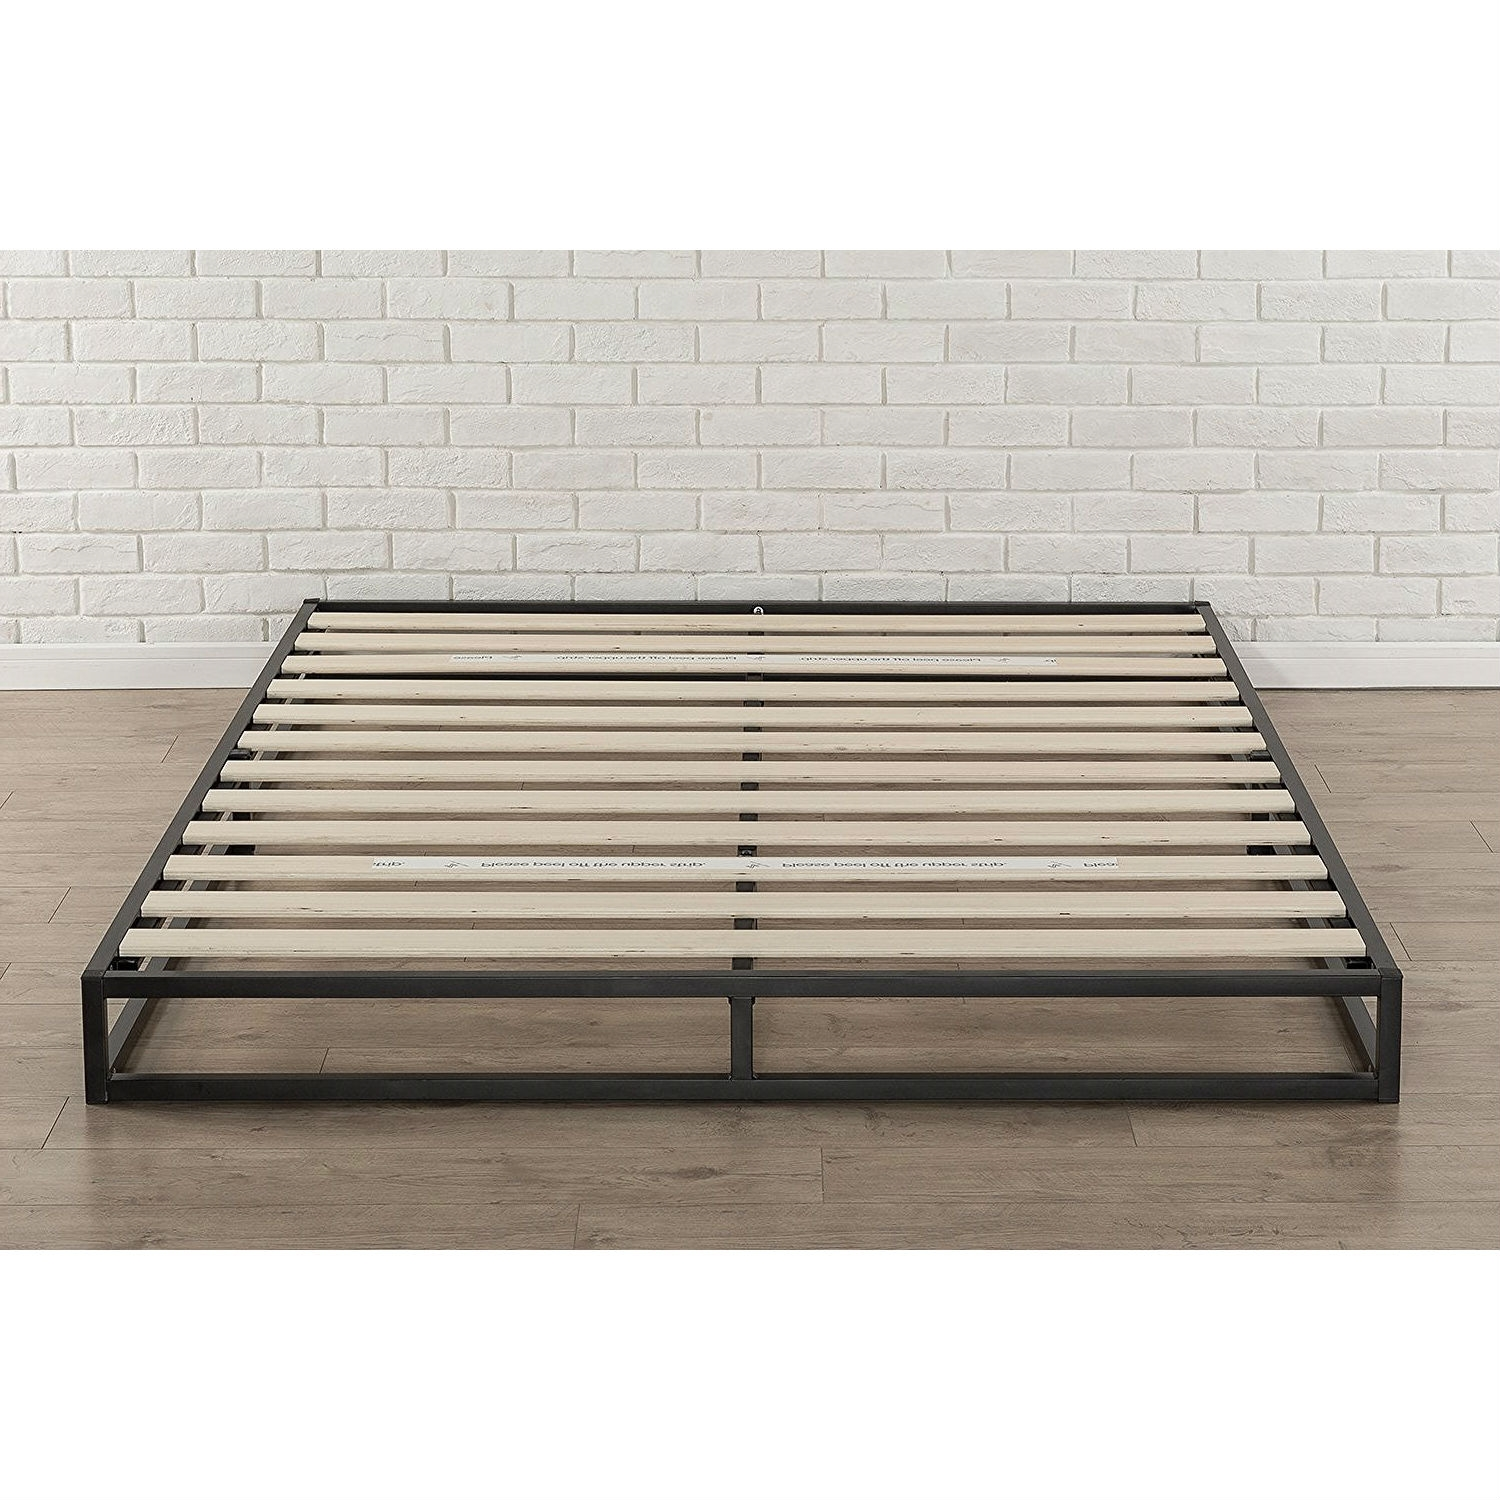 Full size 6inch Low Profile Metal Platform Bed Frame with Wooden